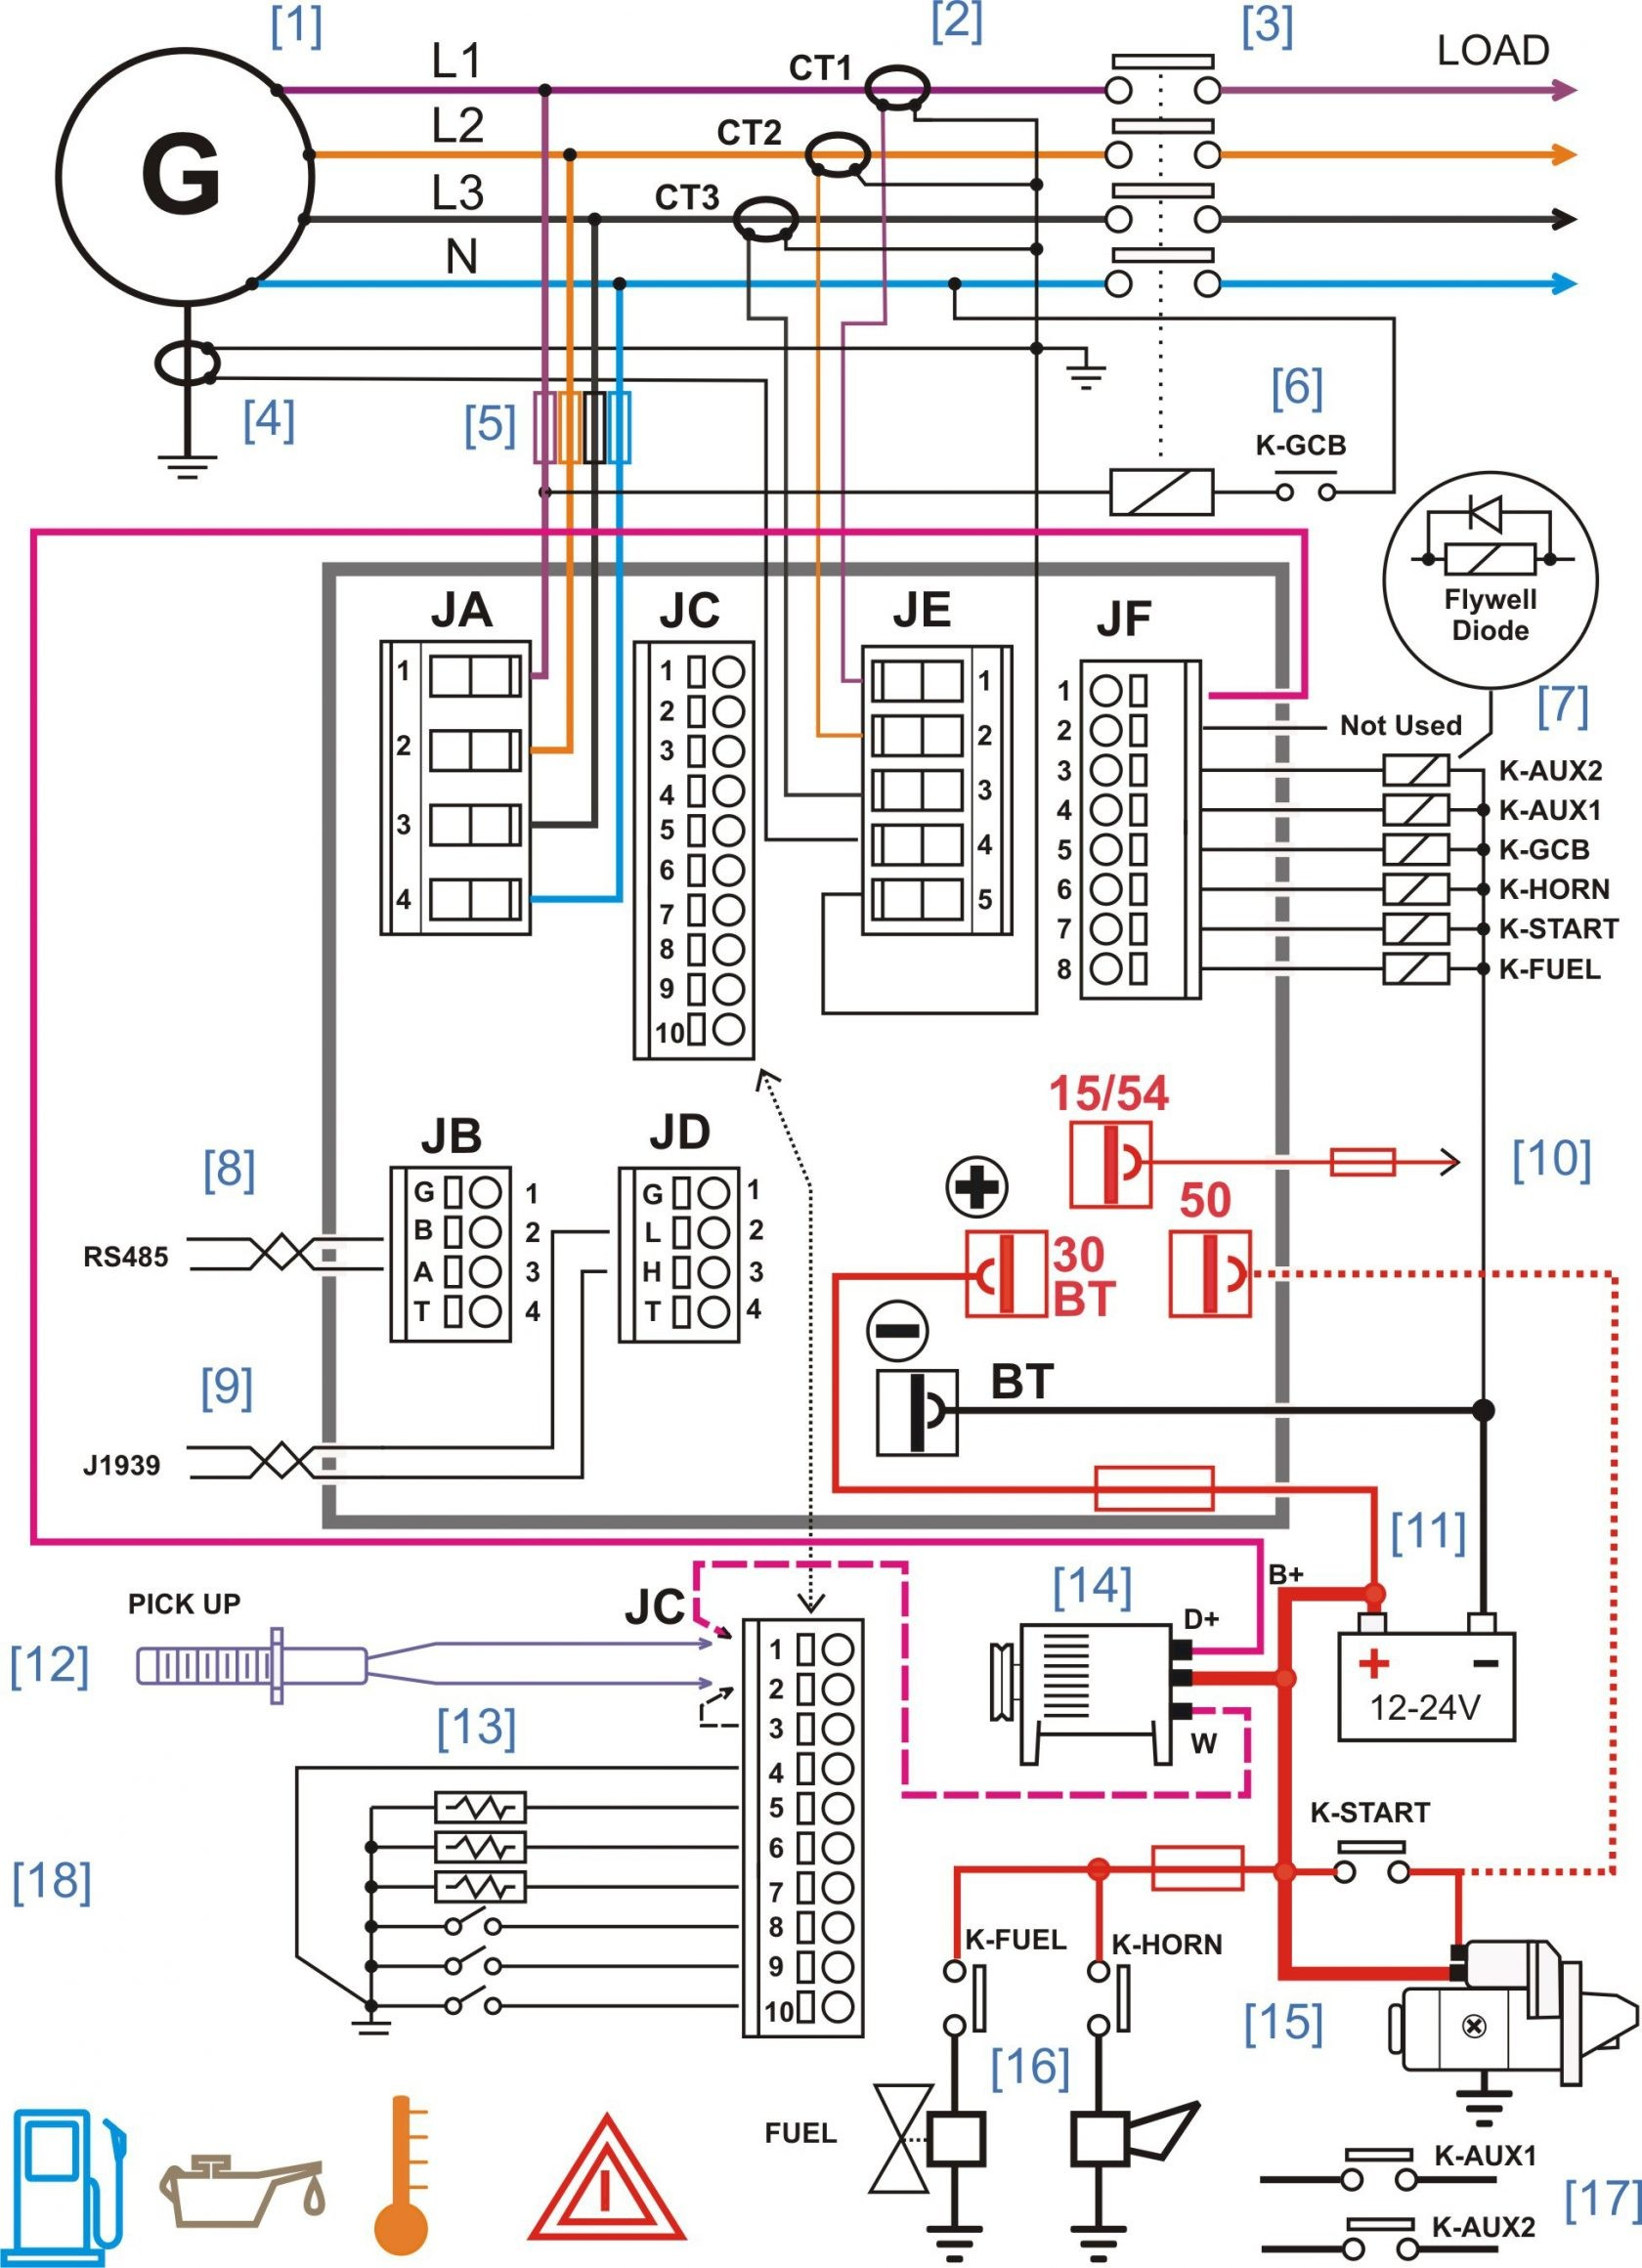 delco car stereo wiring diagram Collection-Wiring Diagram for Car Audio System Valid Wiring Diagram for Car Audio Elegant Wiring Diagram Delco 13-s